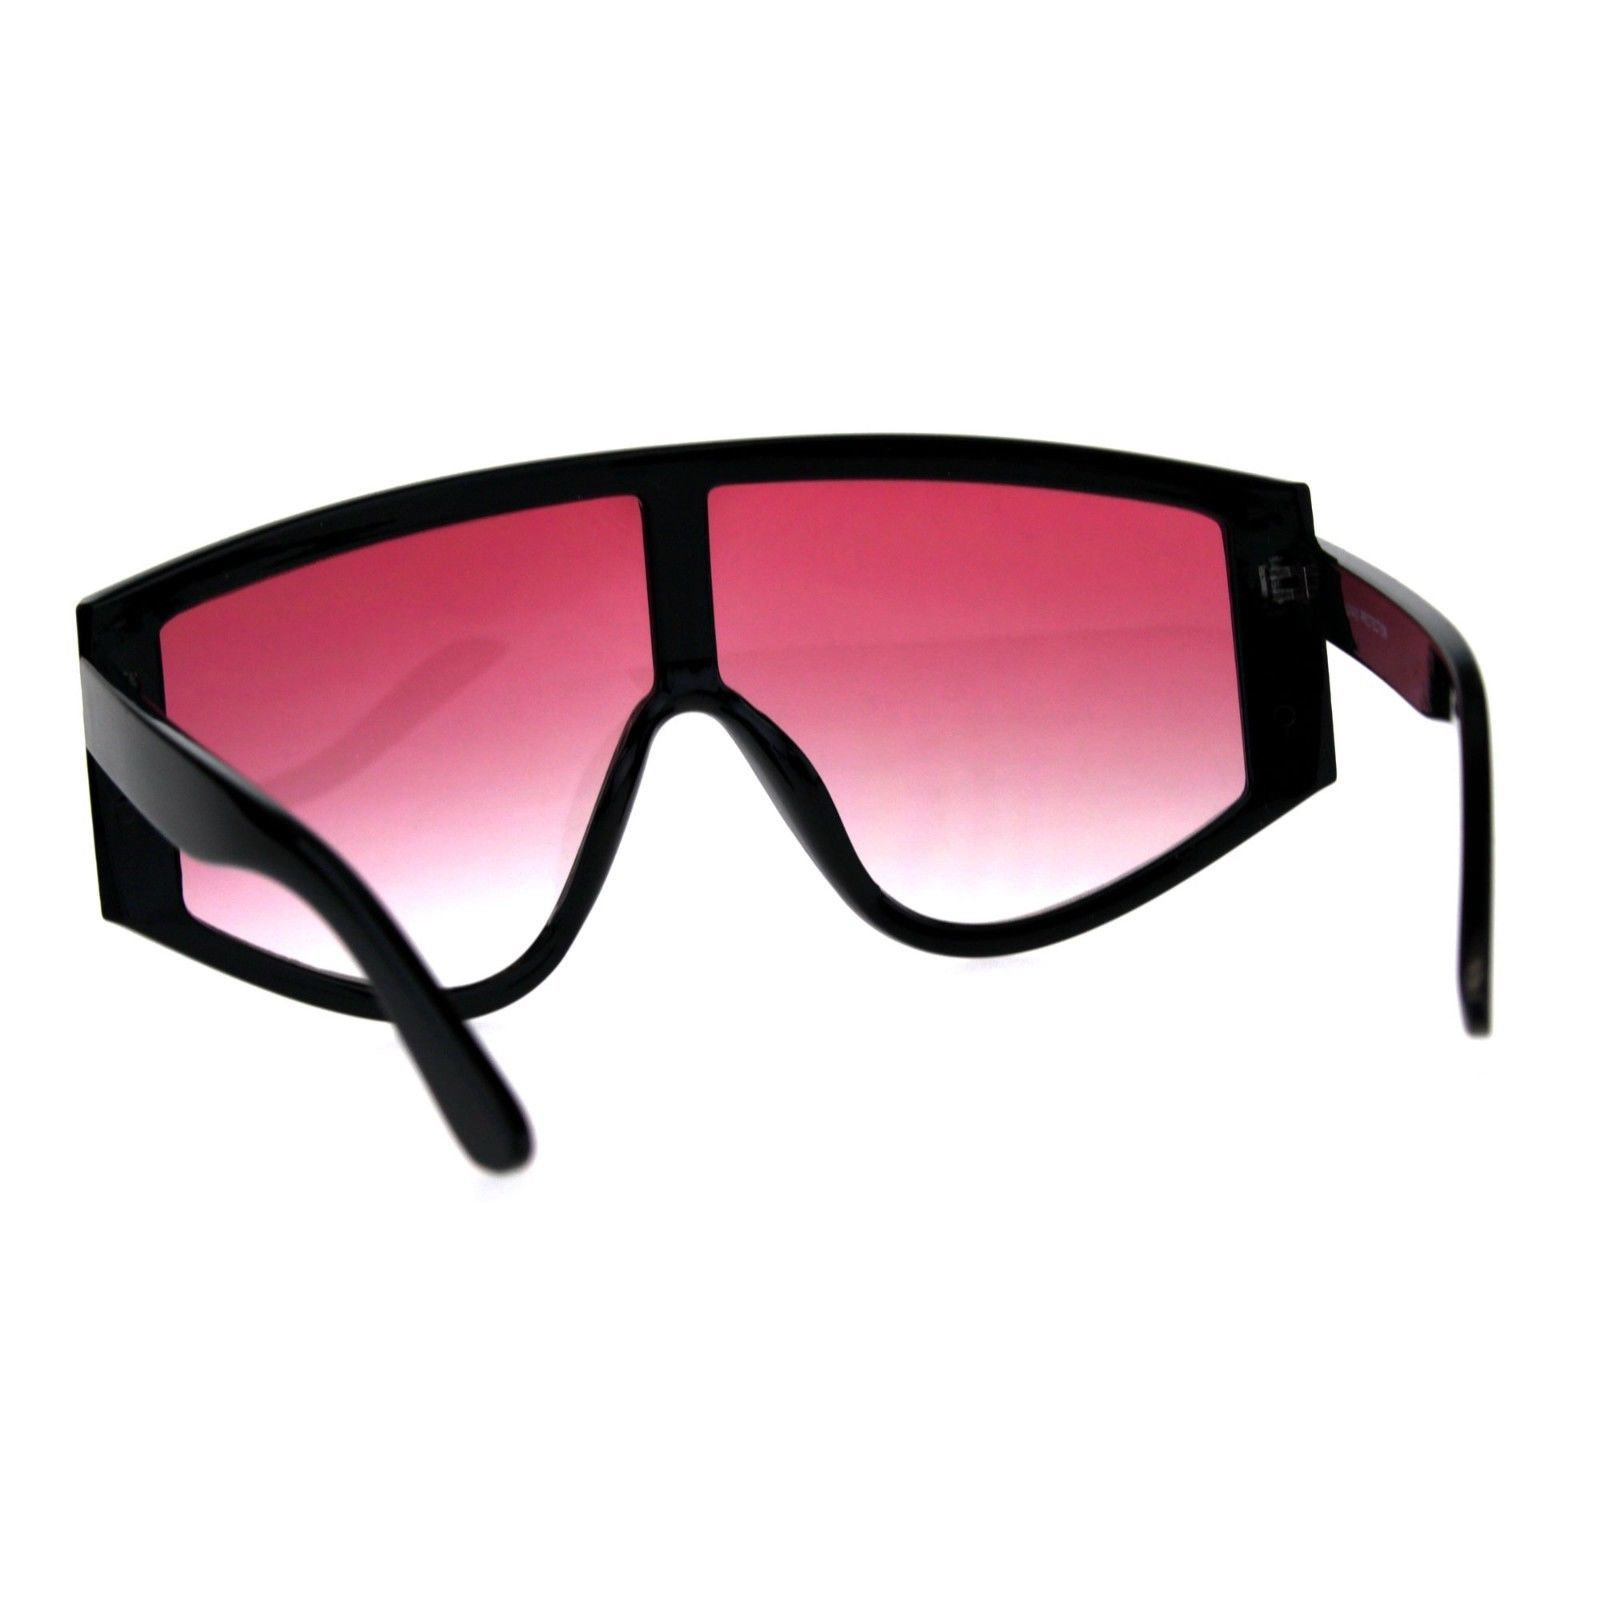 Super Oversized Goggle Style Sunglasses Arched Top Shield Fashion Shades